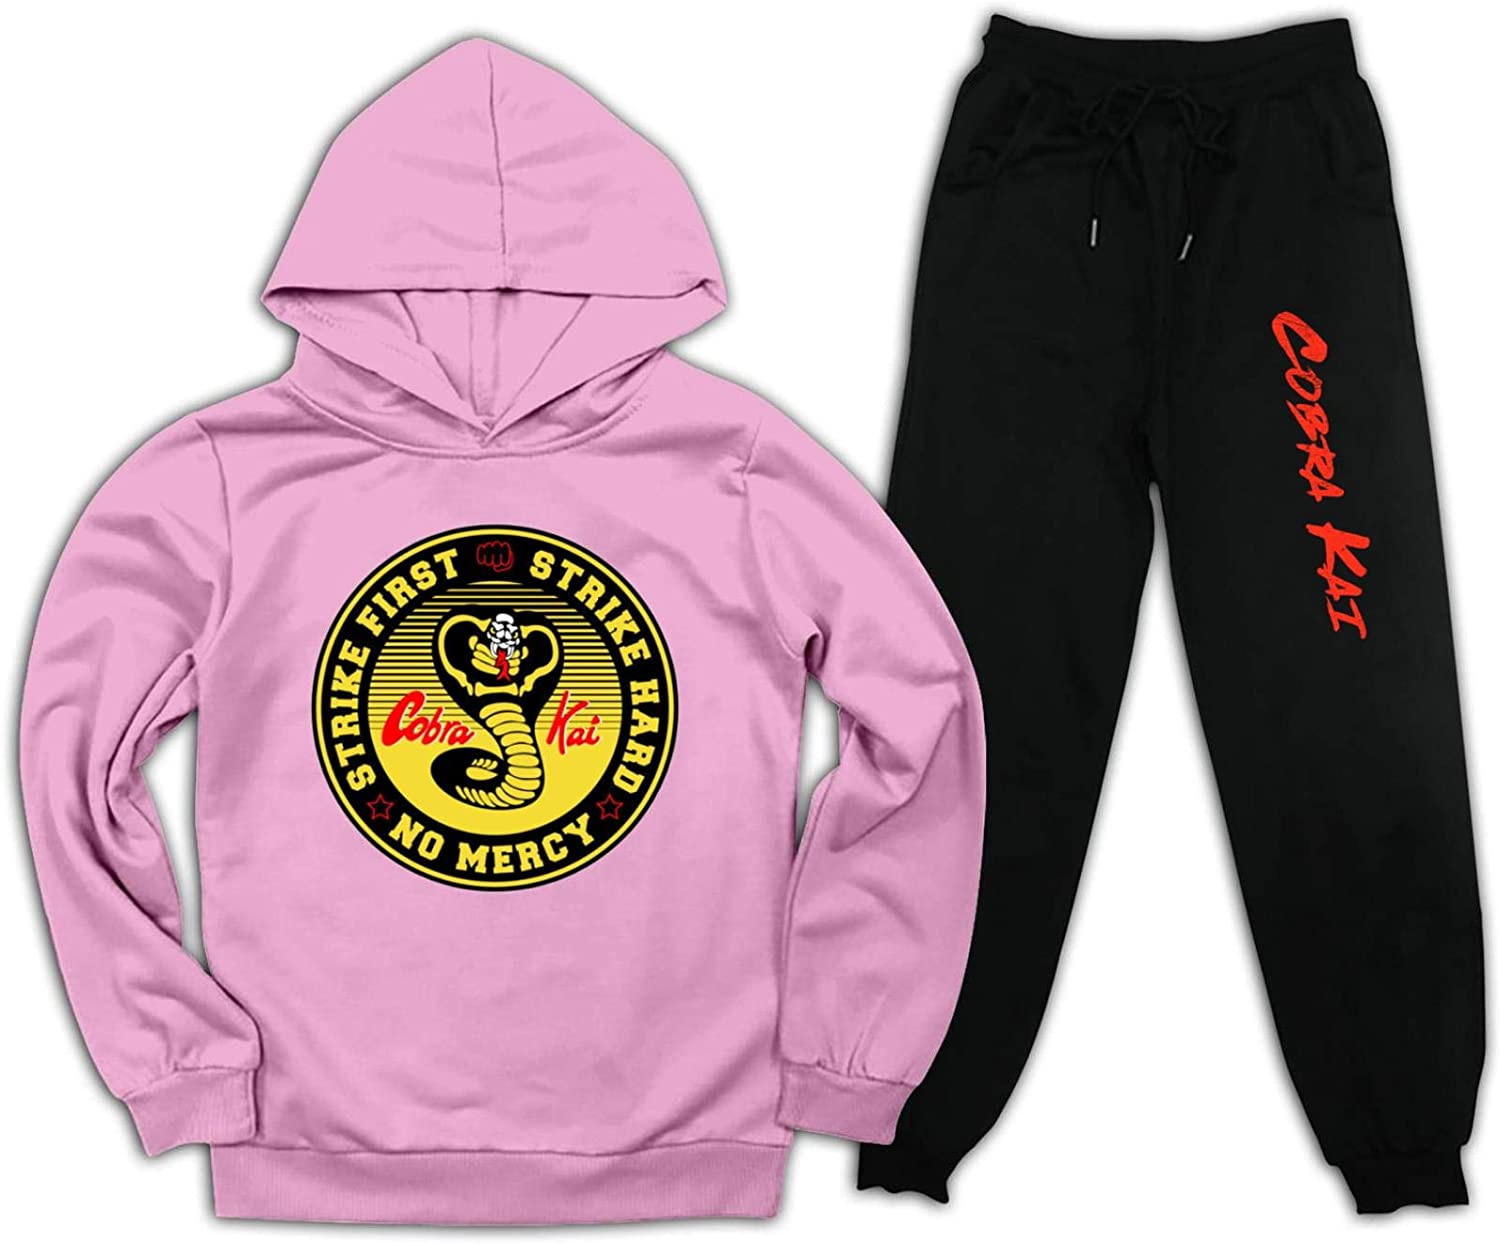 YAsedd Co-Bra Kai Pullover Hoodie and Sweatpants Suit for Boys Girls 2 Piece Outfits Sweatshirt Set